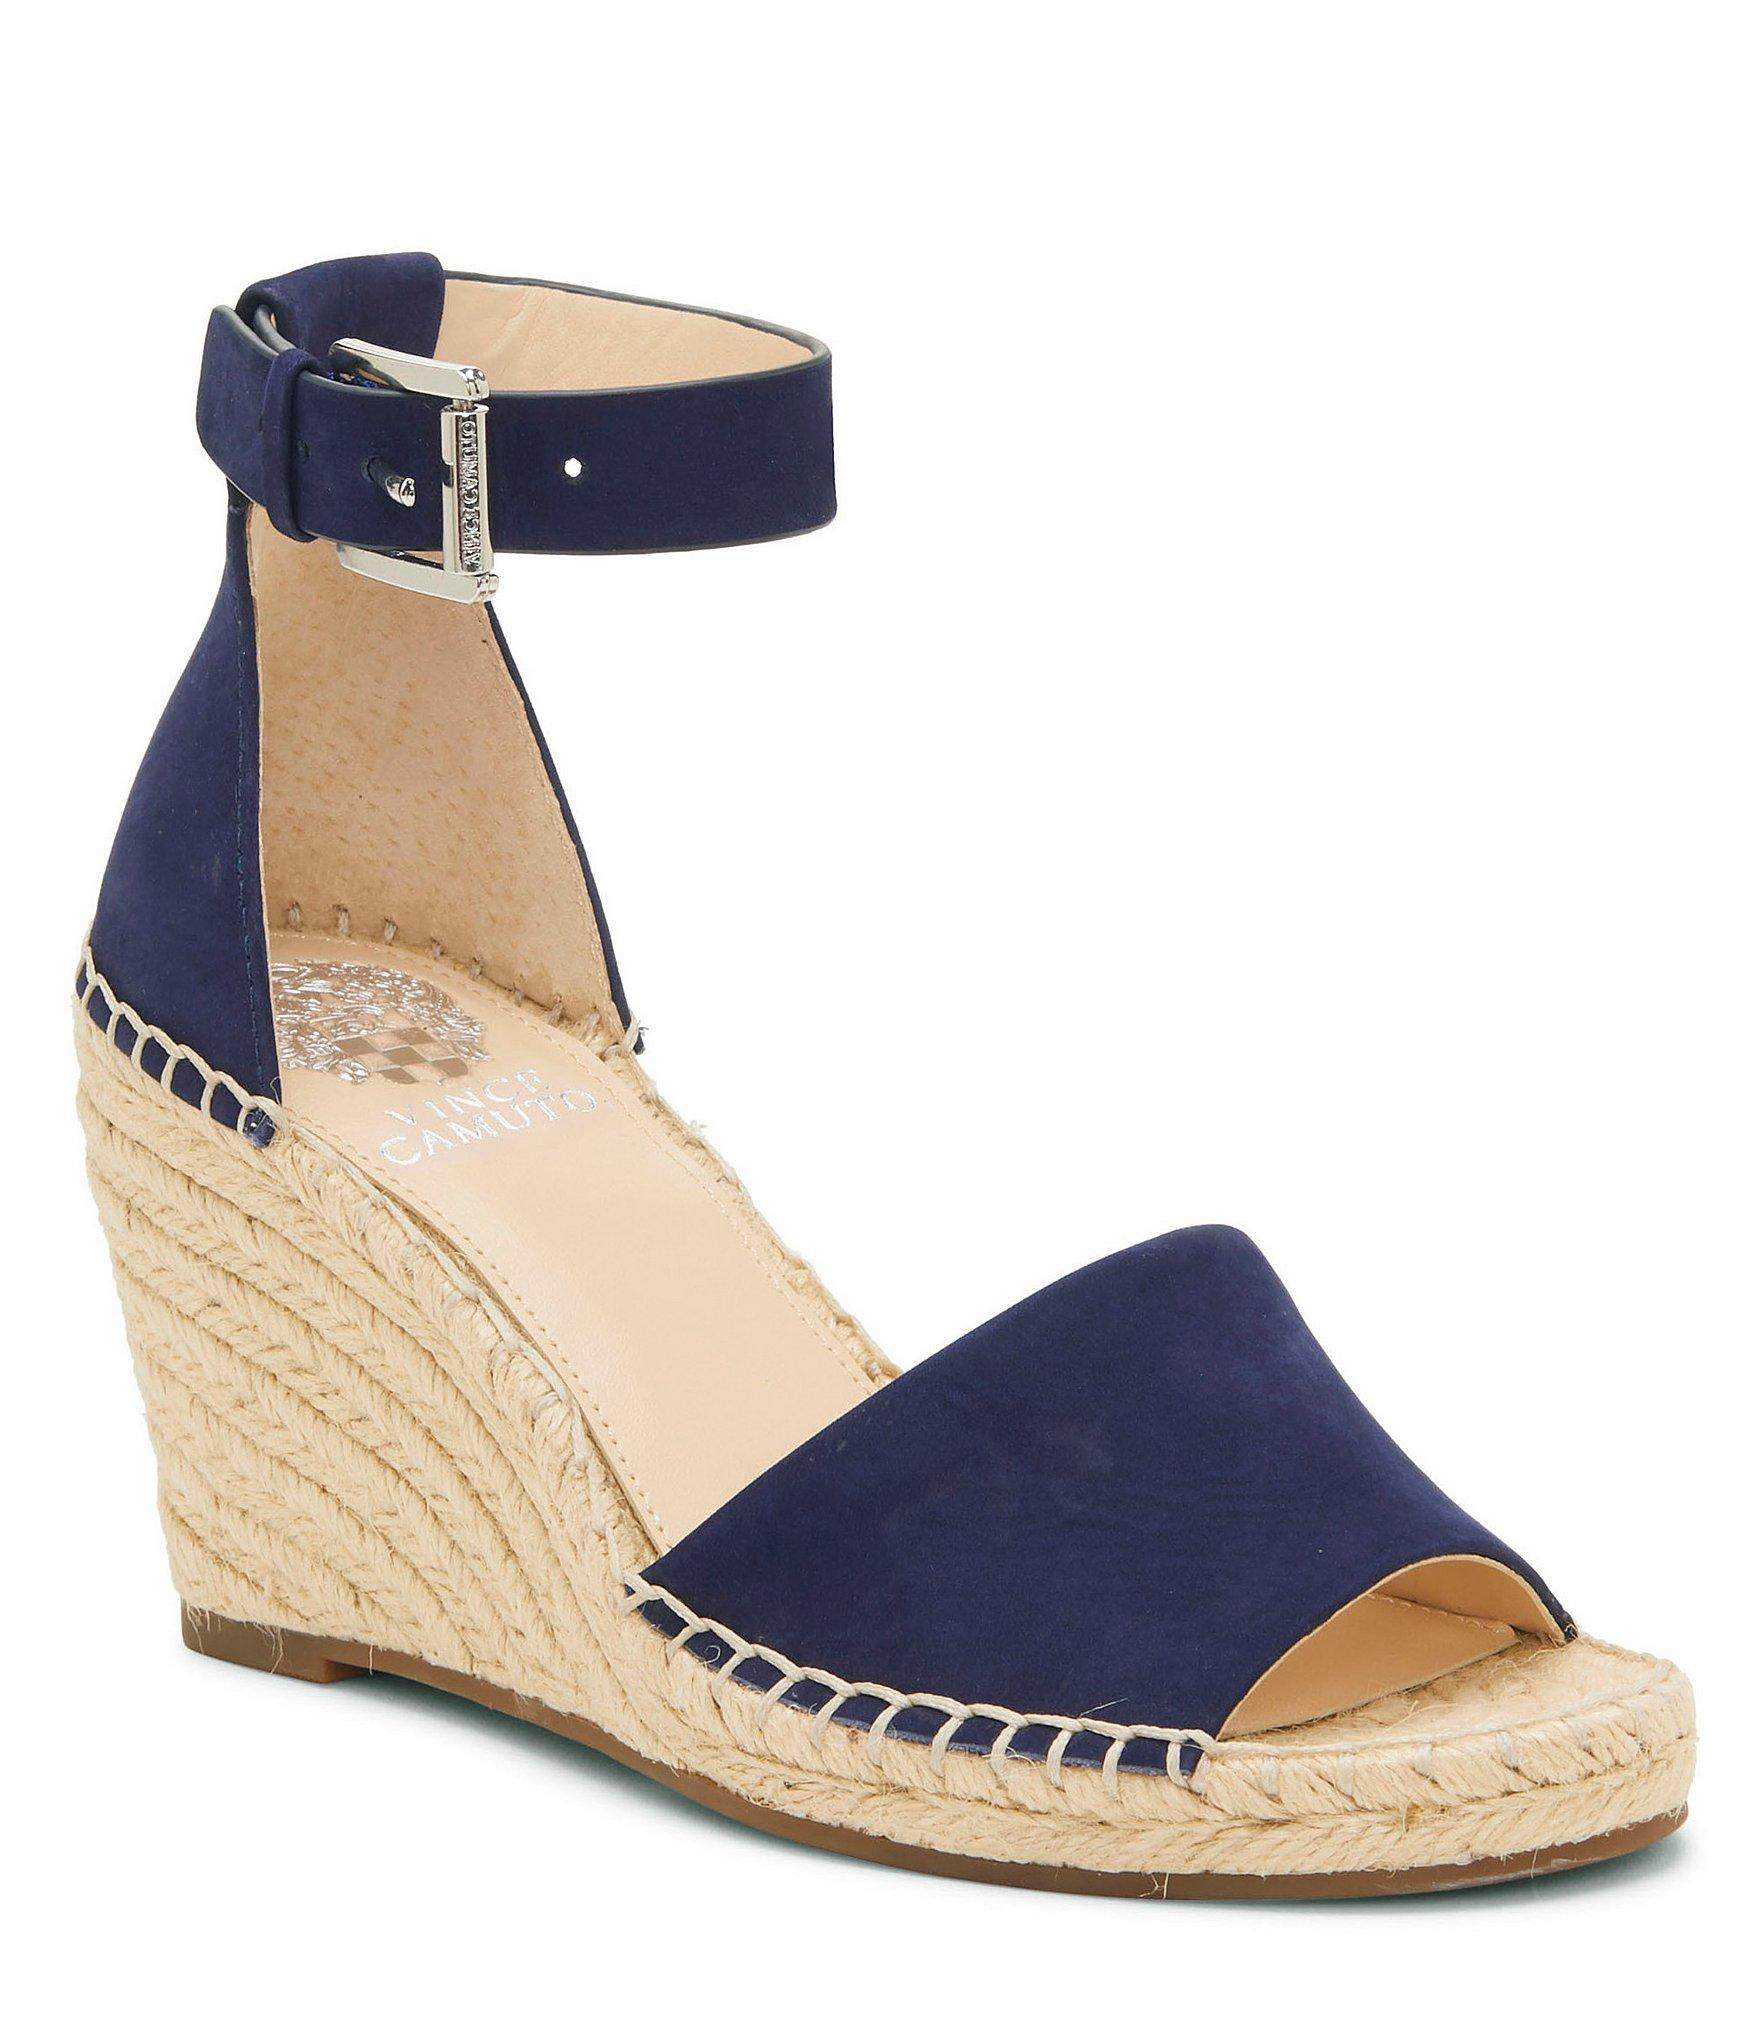 47abff896fb Lyst - Vince Camuto Leera Nubuck Espadrille Wedge Sandals in Blue